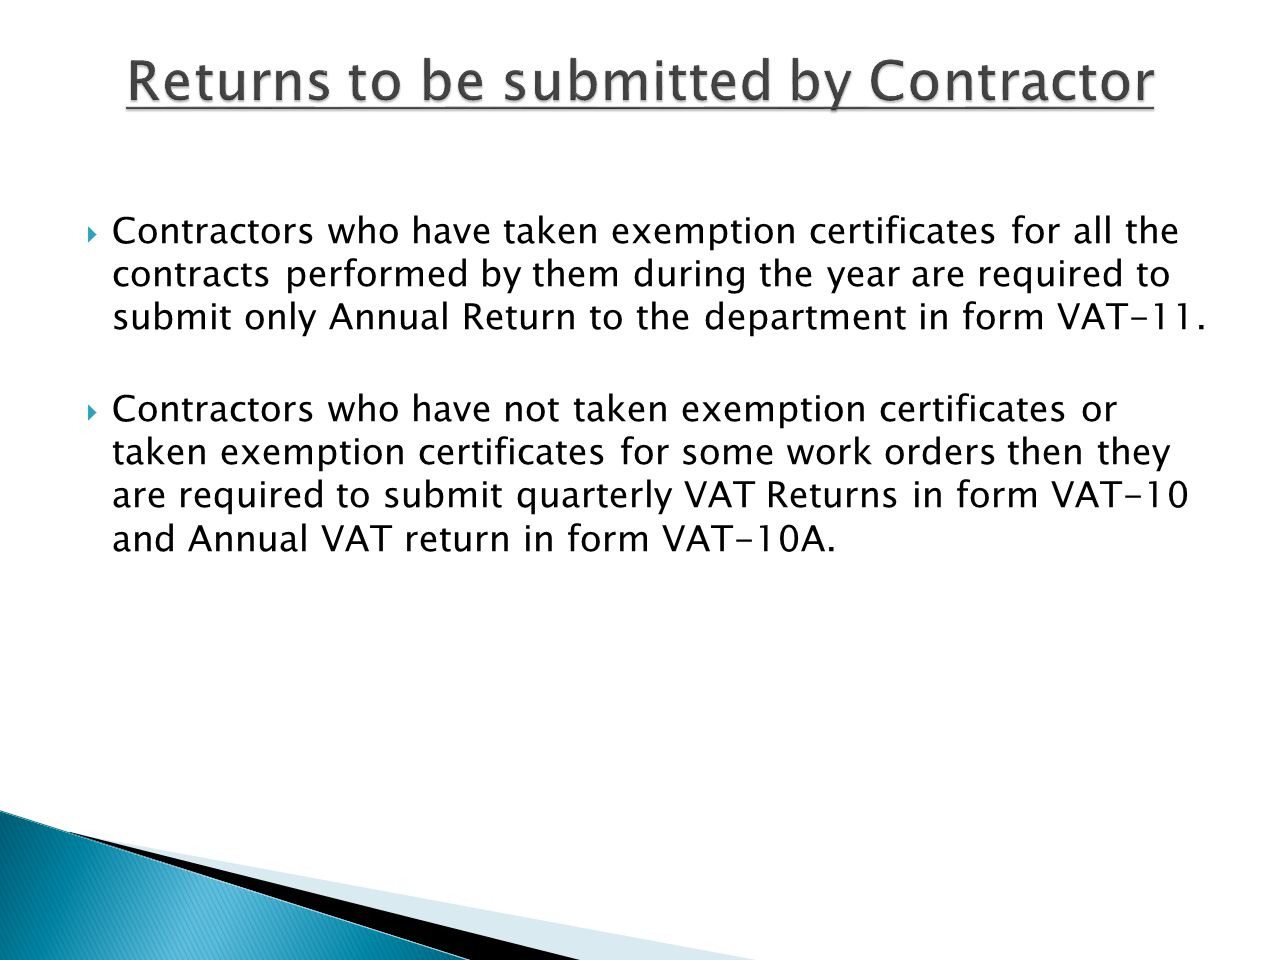 Returns to be submitted by Contractor